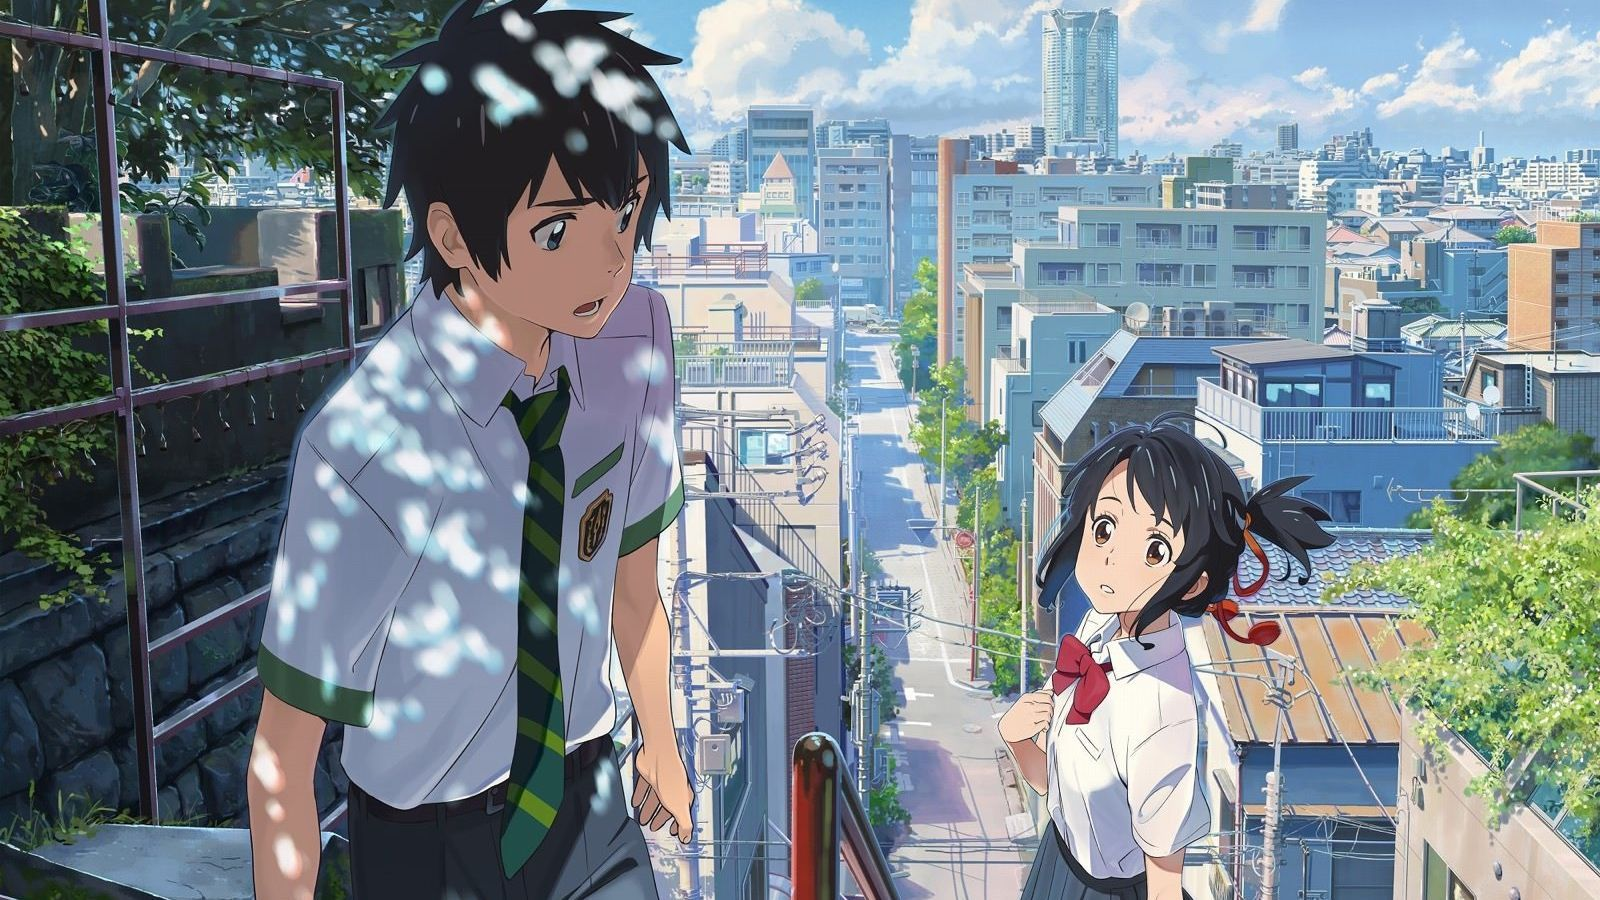 Un fotograma de 'Your name'